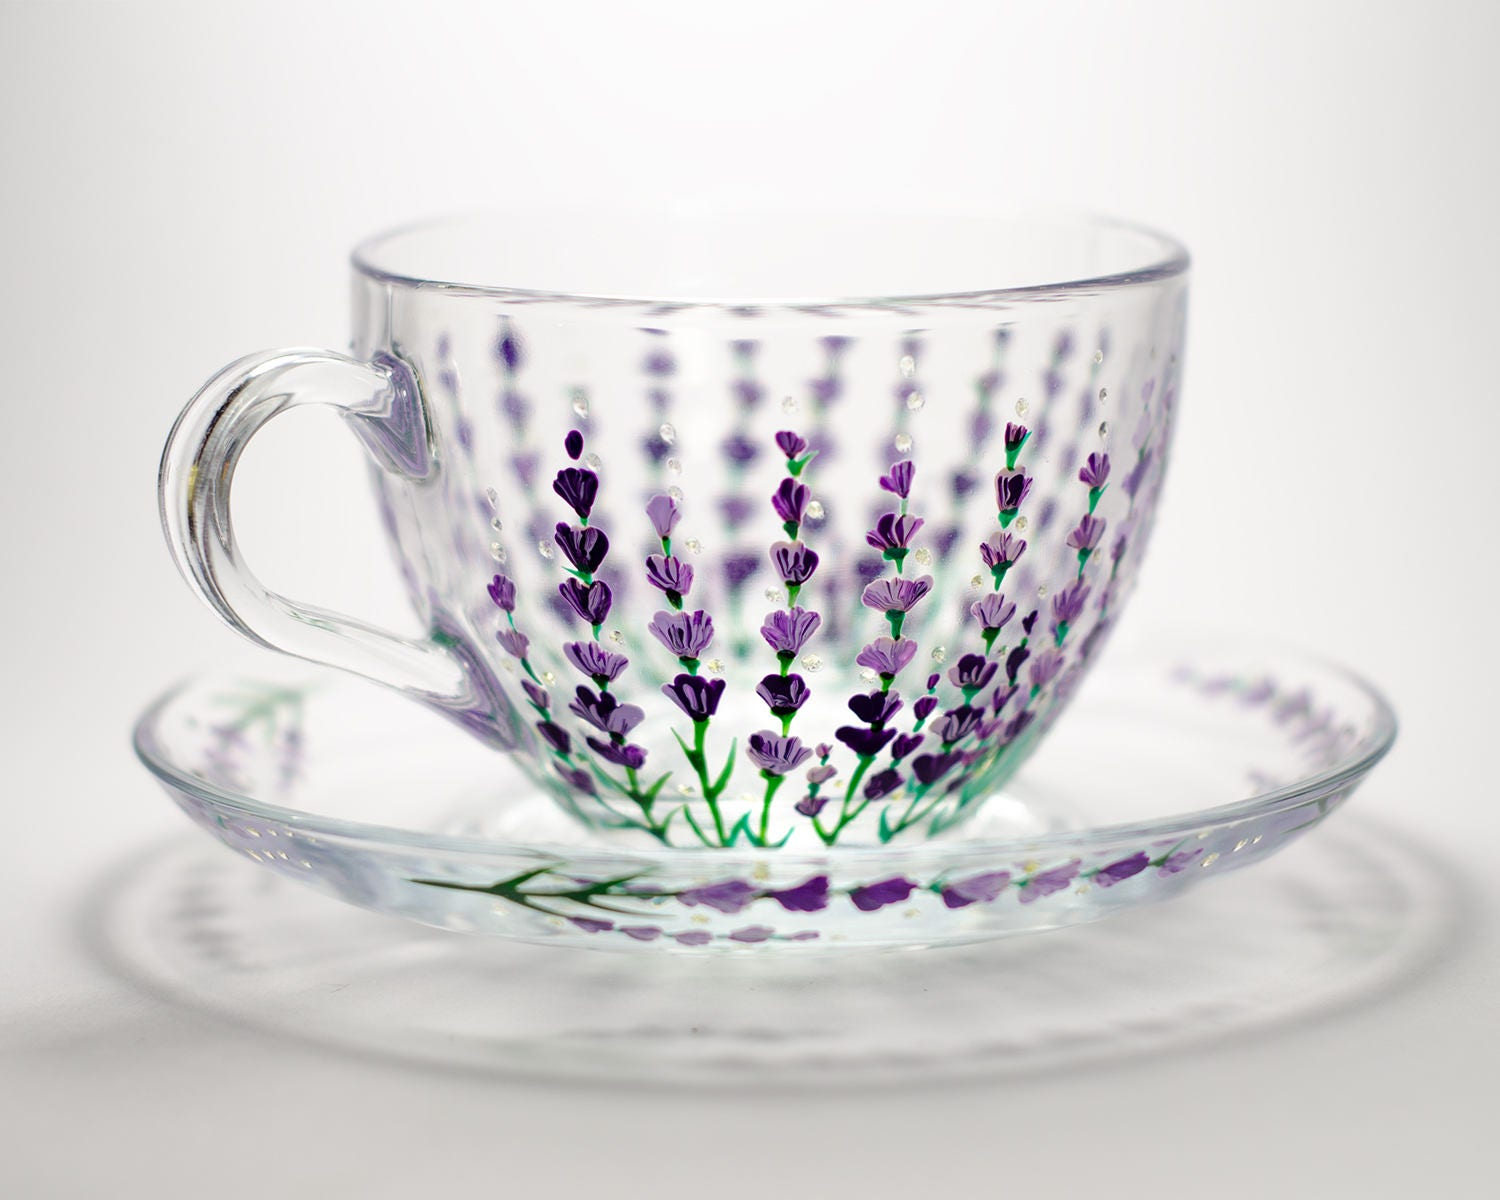 Lavender Tea set cup and saucer Glass teacup for woman